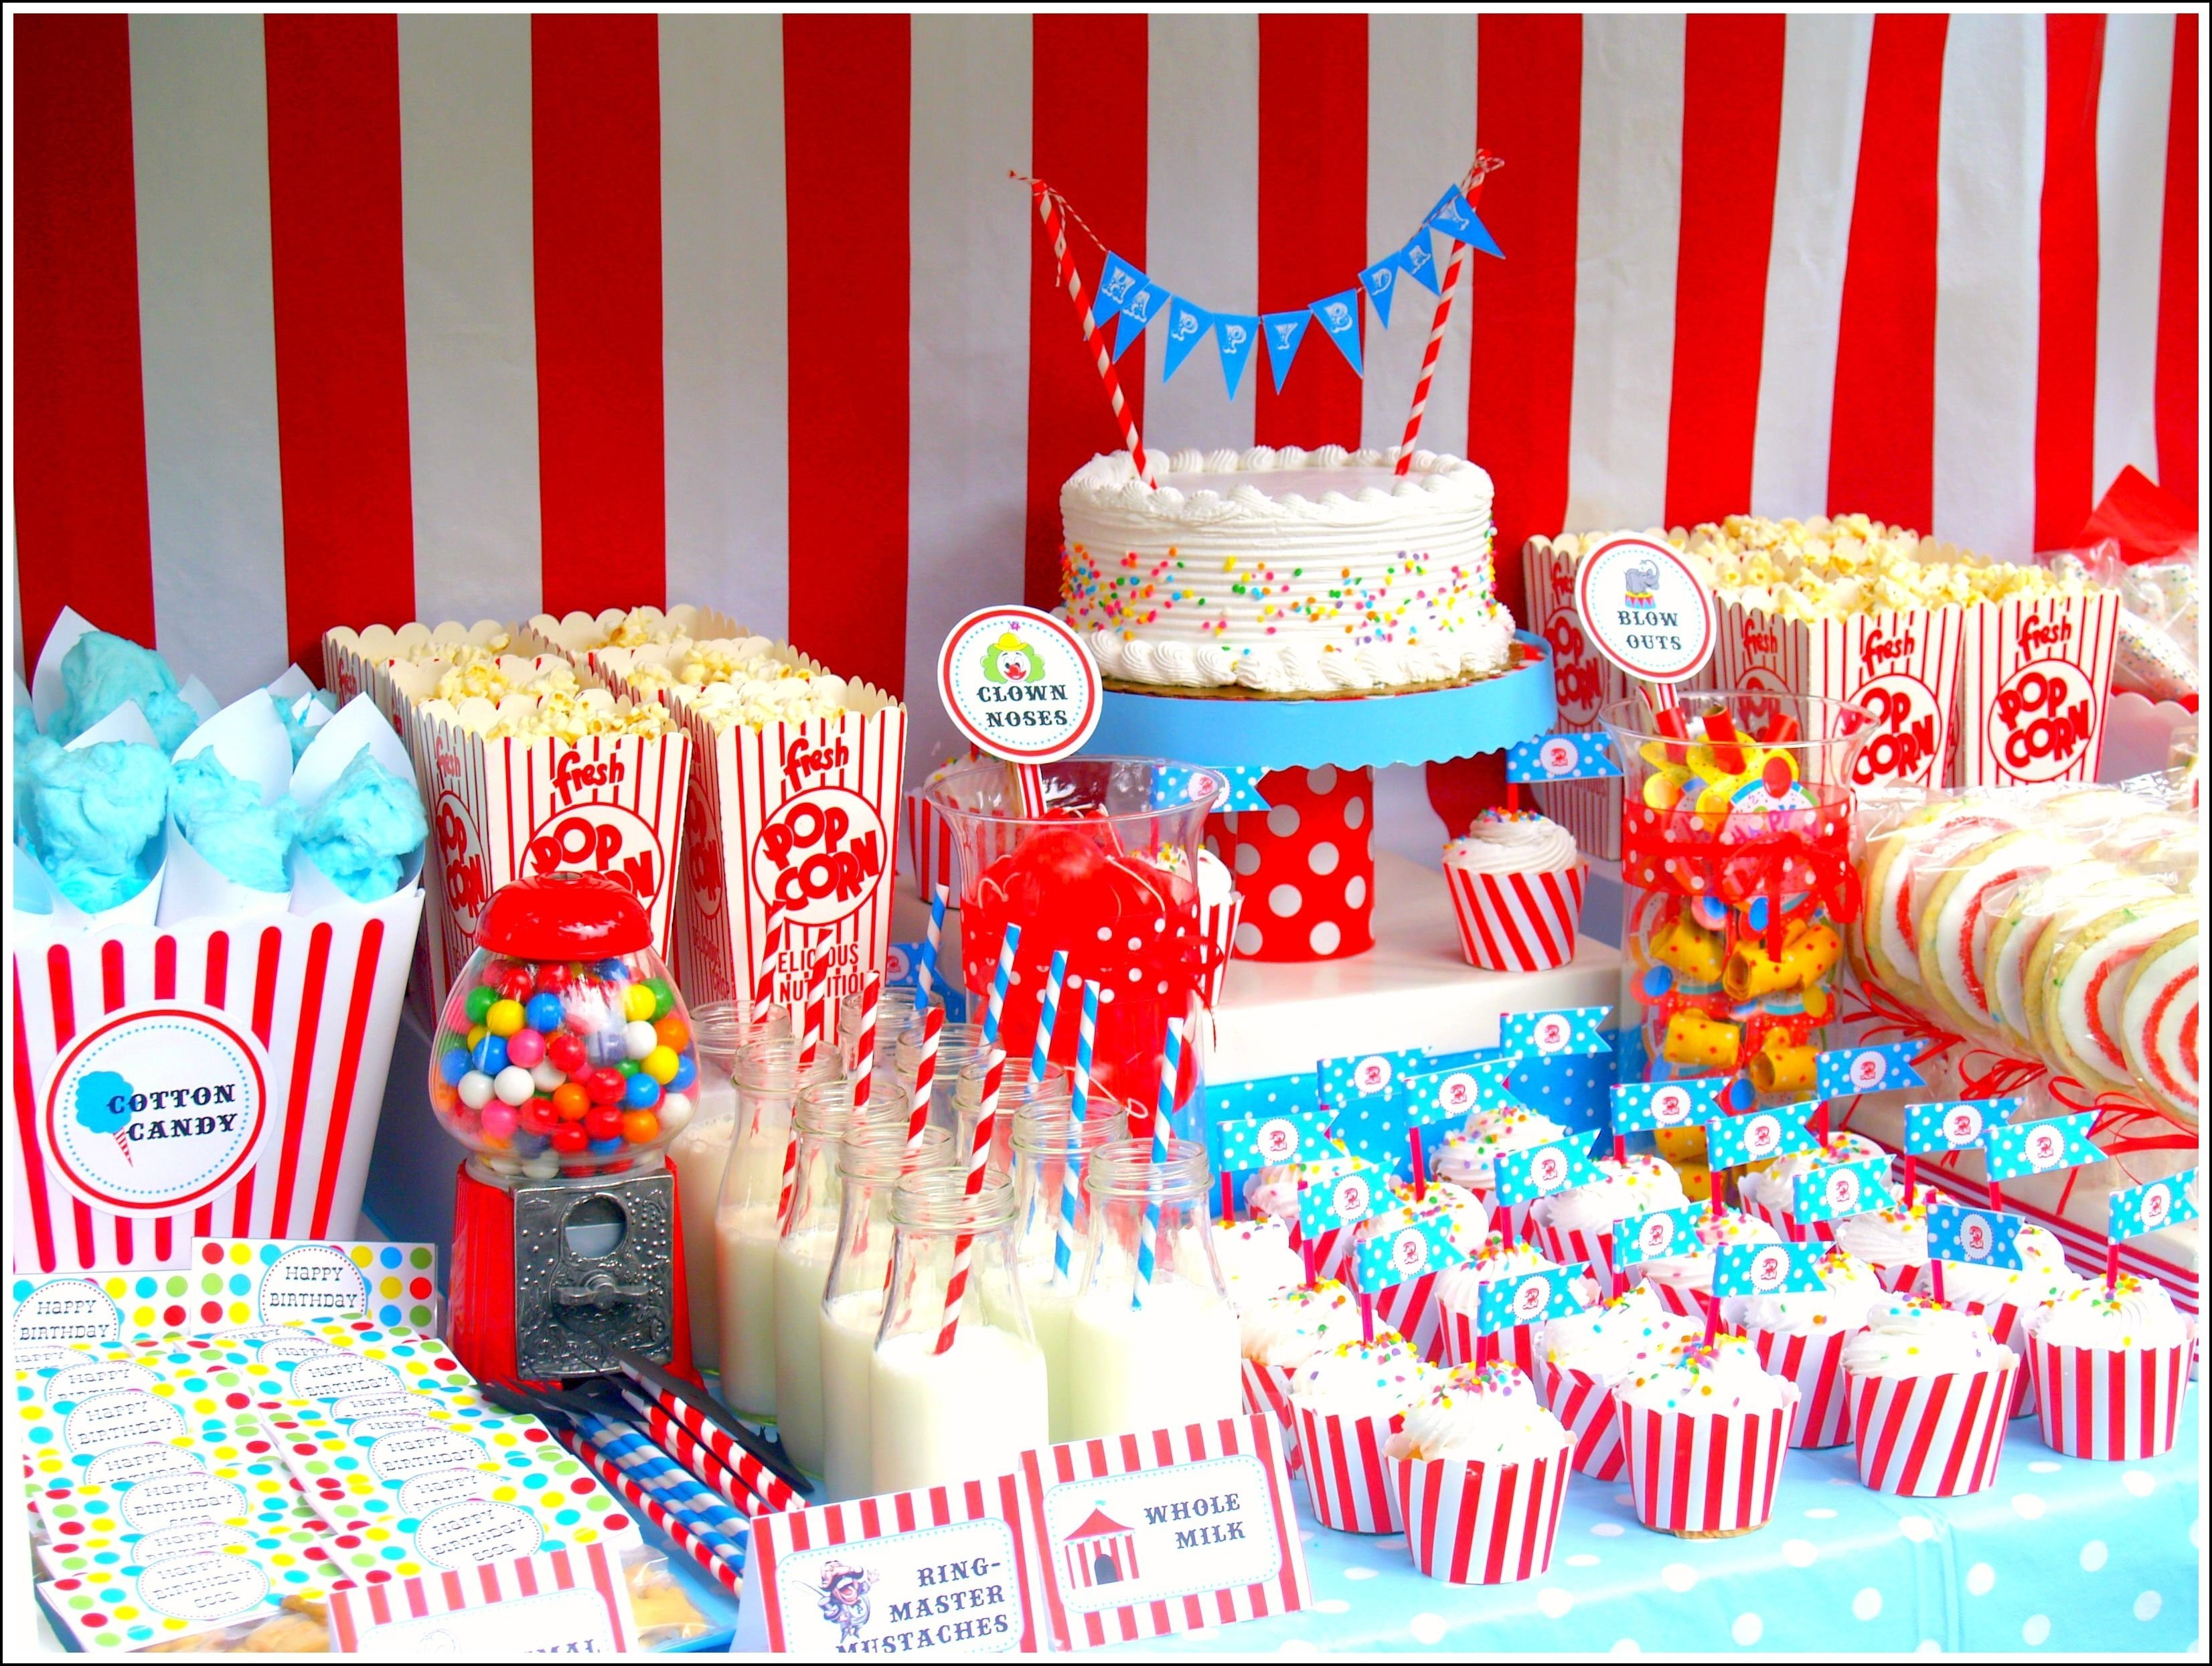 10 Most Popular Carnival Party Ideas For Adults circus birthday party ideas vintage inspired circus birthday party 2020